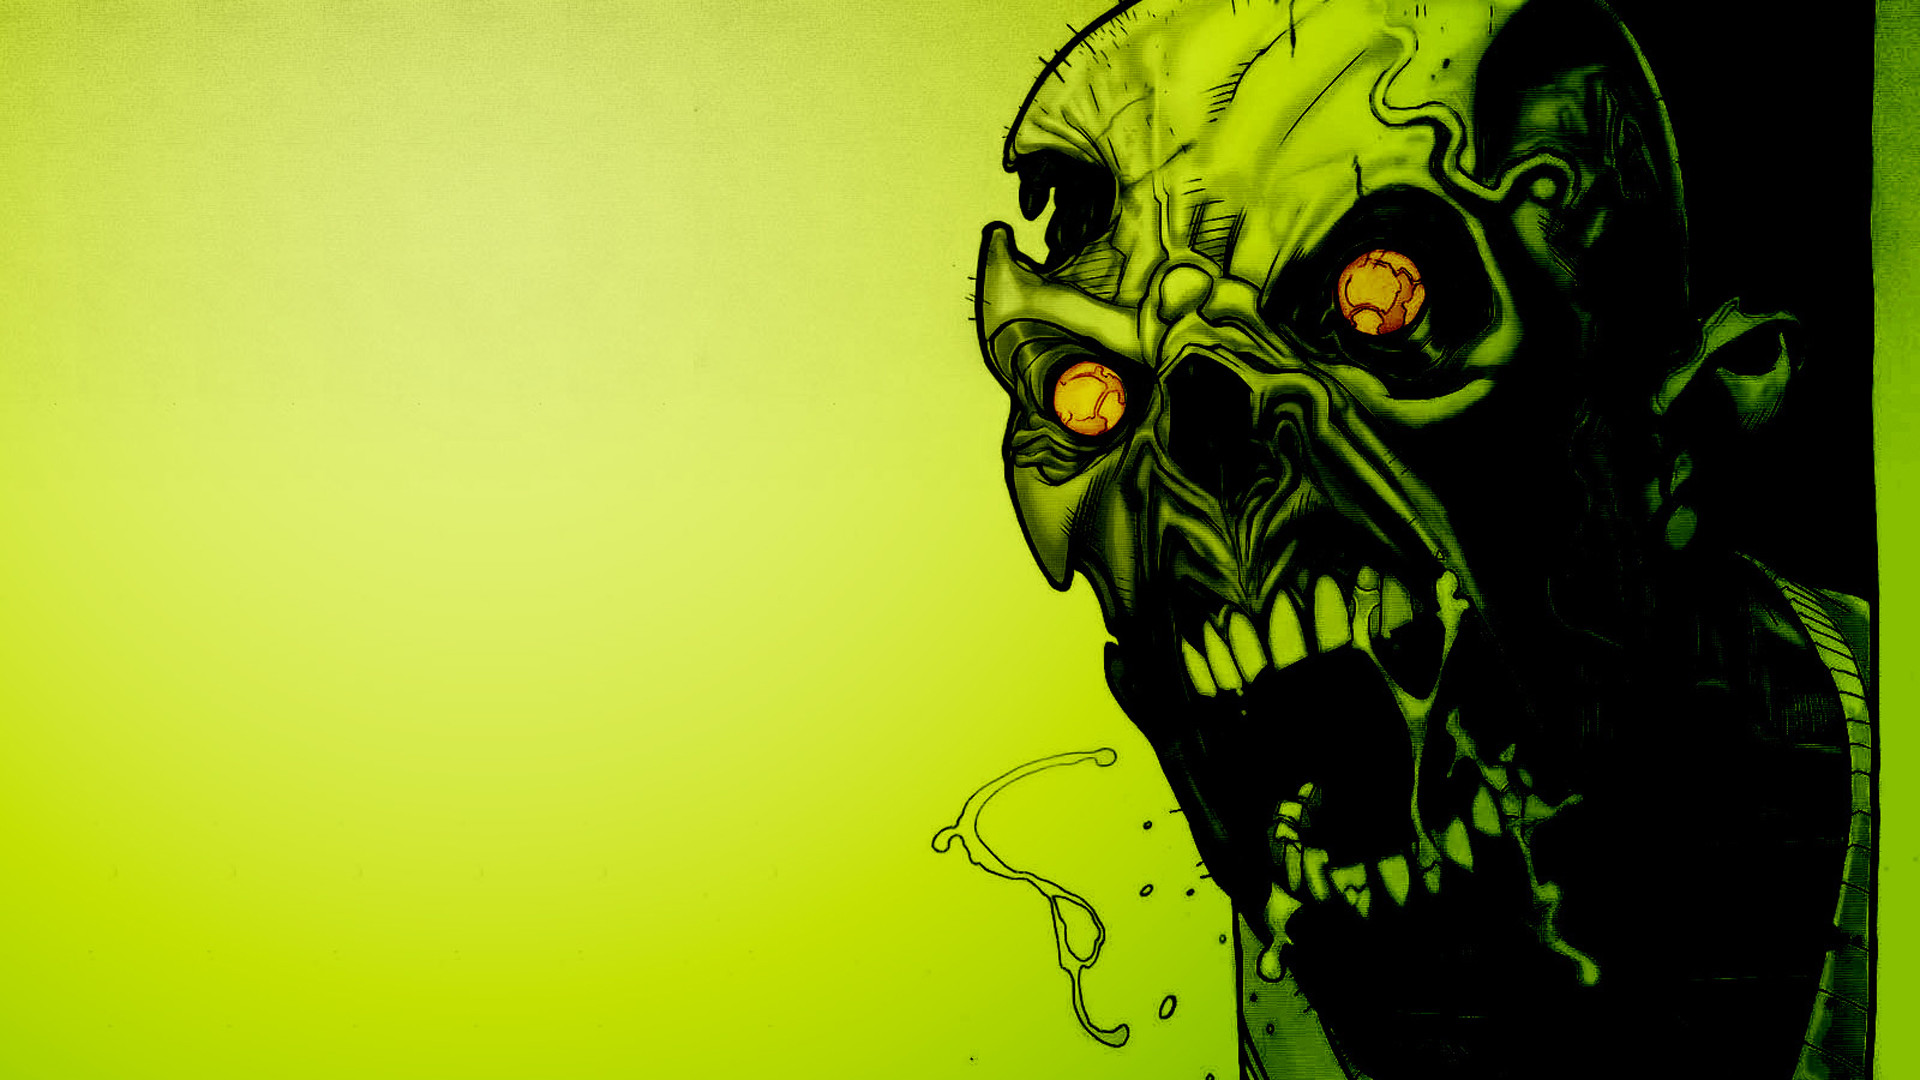 1920x1080 Latest Zombie Wallpaper